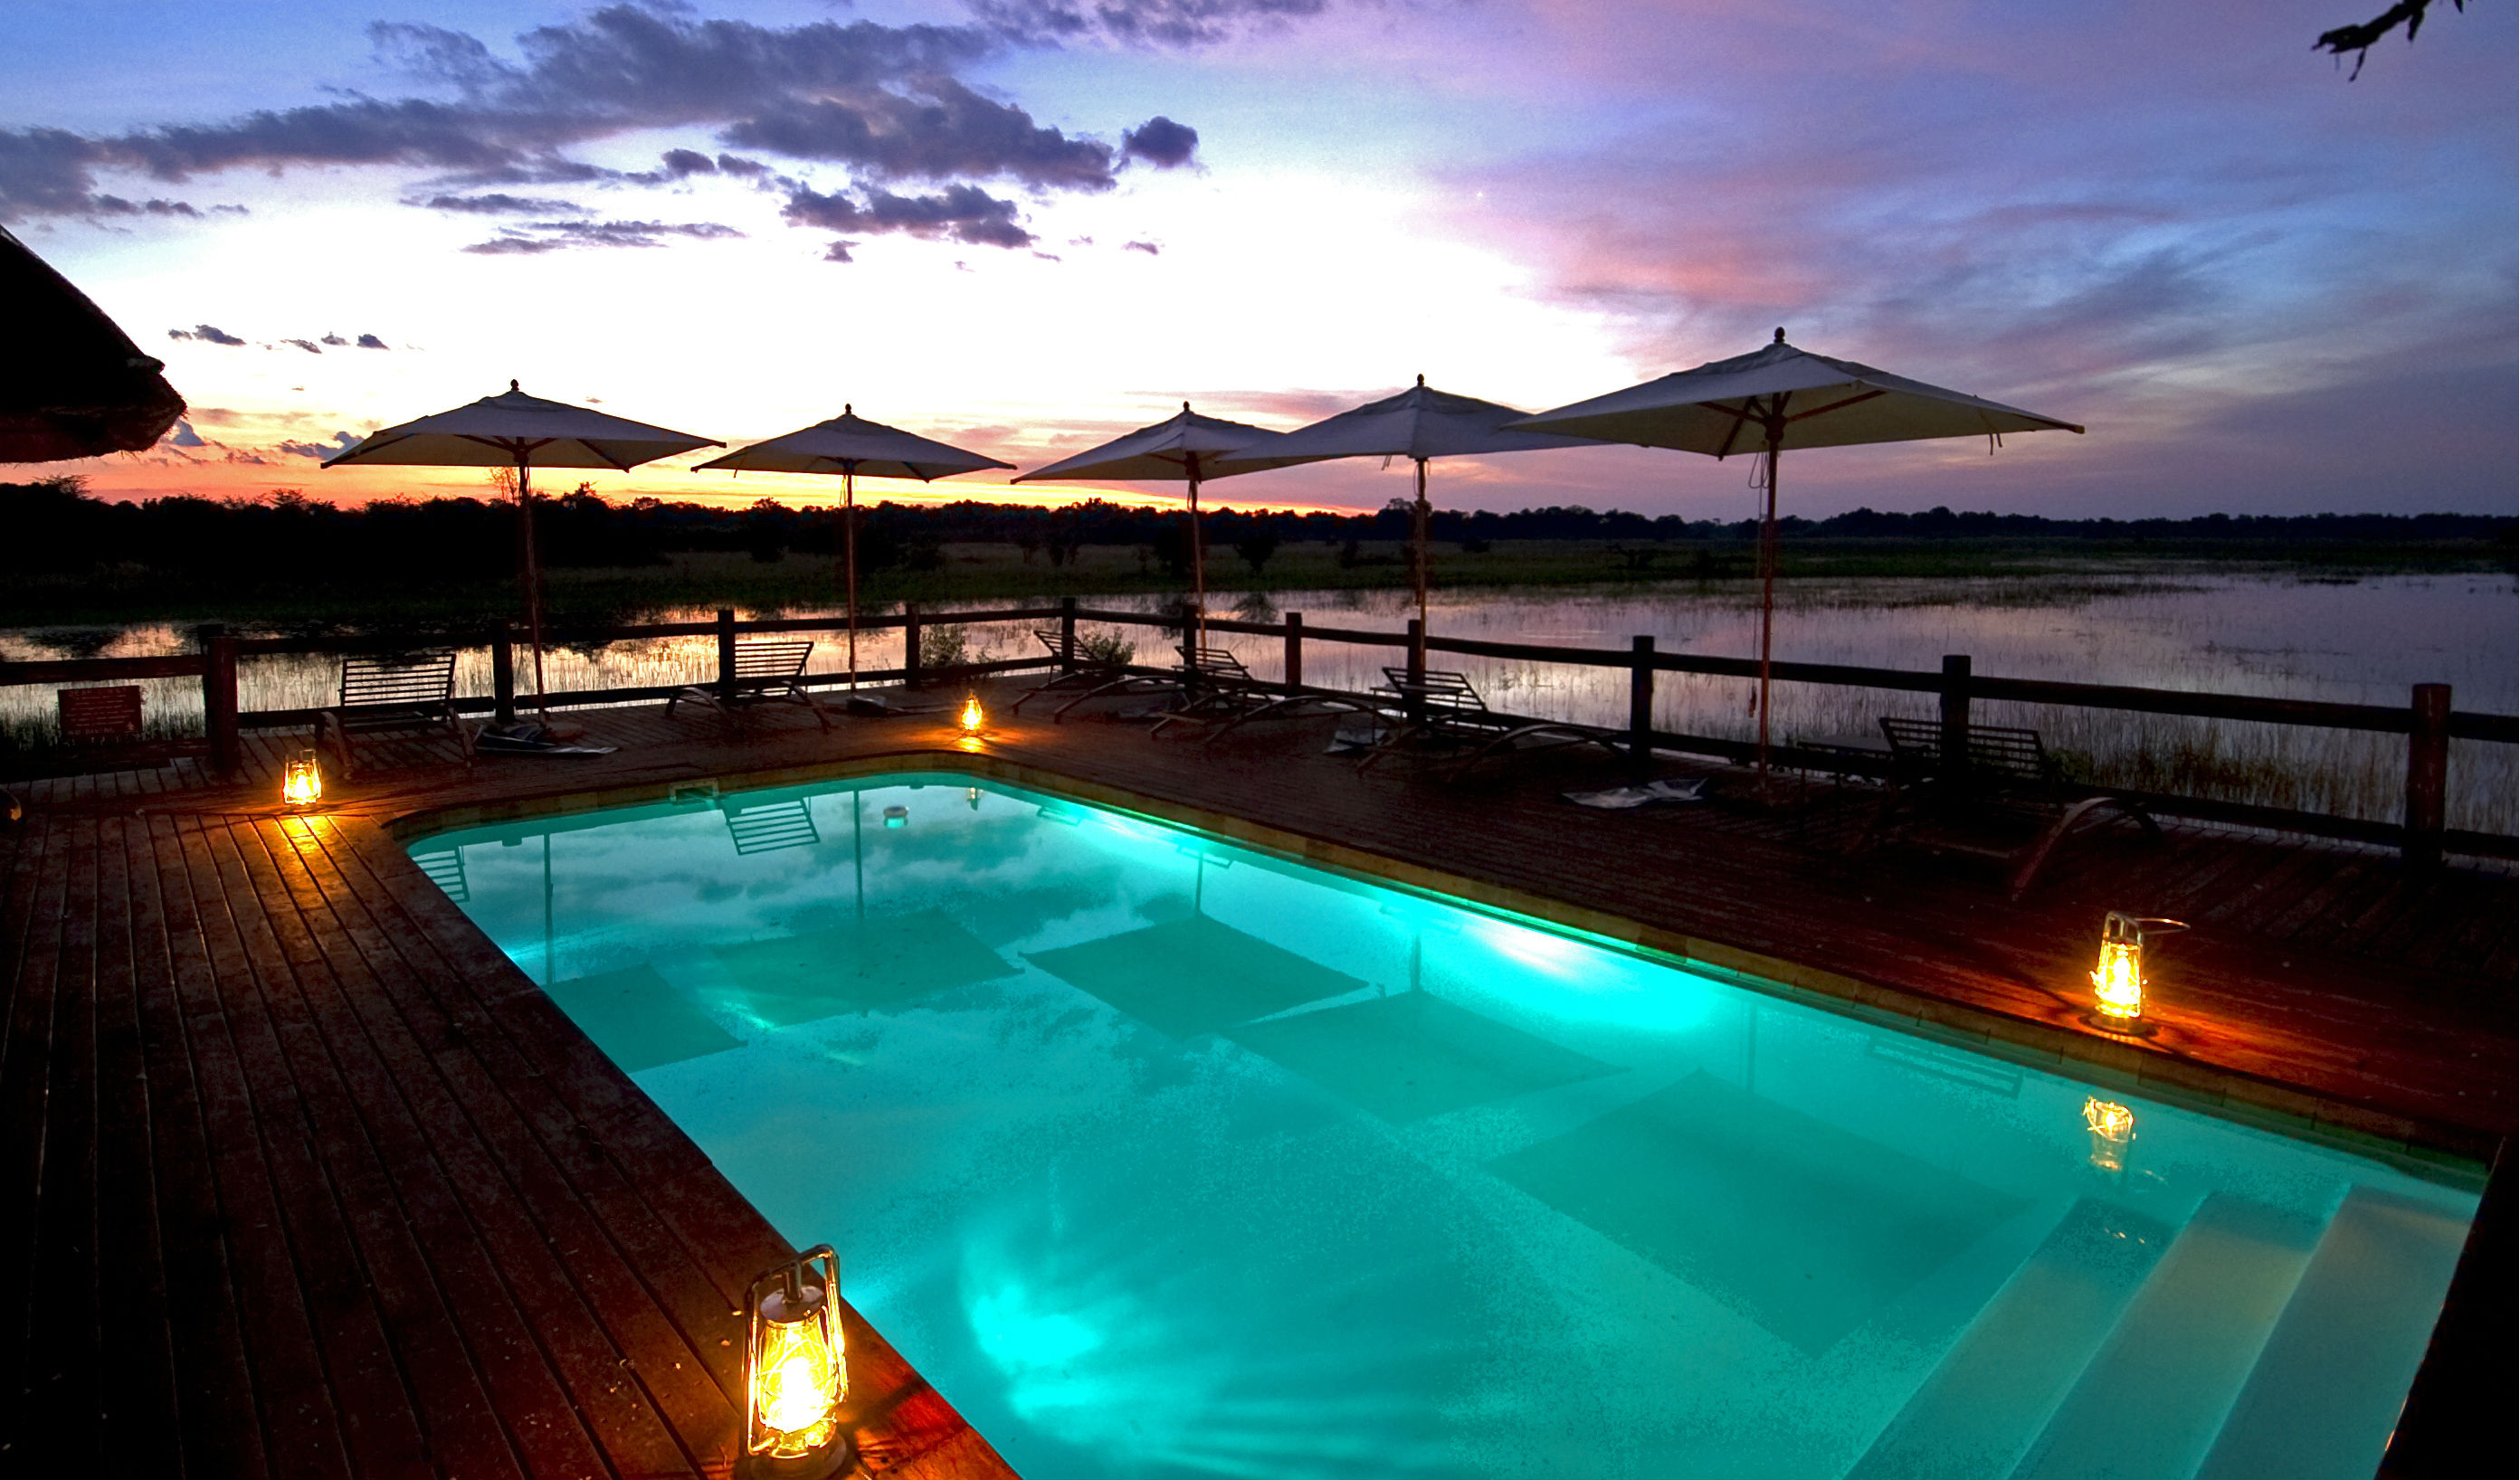 Pool at luxury camp in Botswana